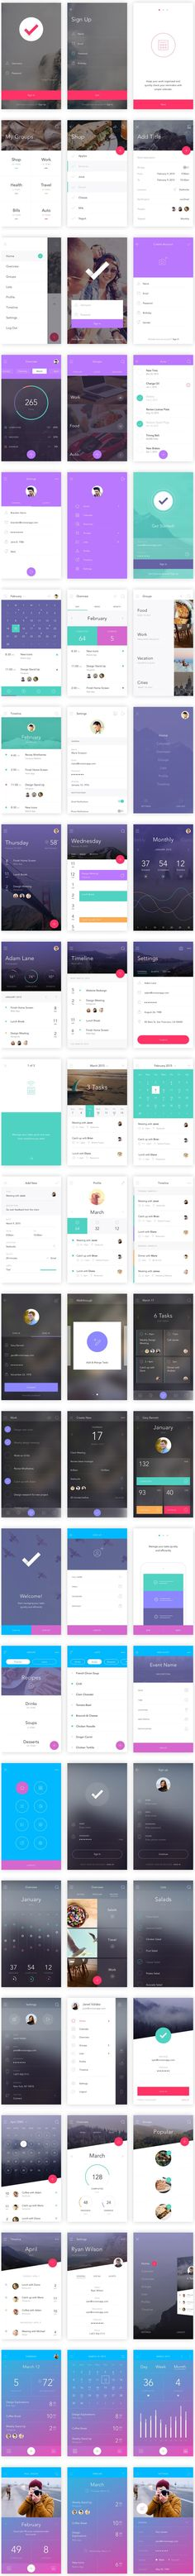 TweetSumoMe Friends, today's featured freebie is a smashing mobile app ui kit called DO. The kit, created by InvisionApp, is for free for Photoshop and Sketch. It's got over 130 stunning screens, 10 complete themes,